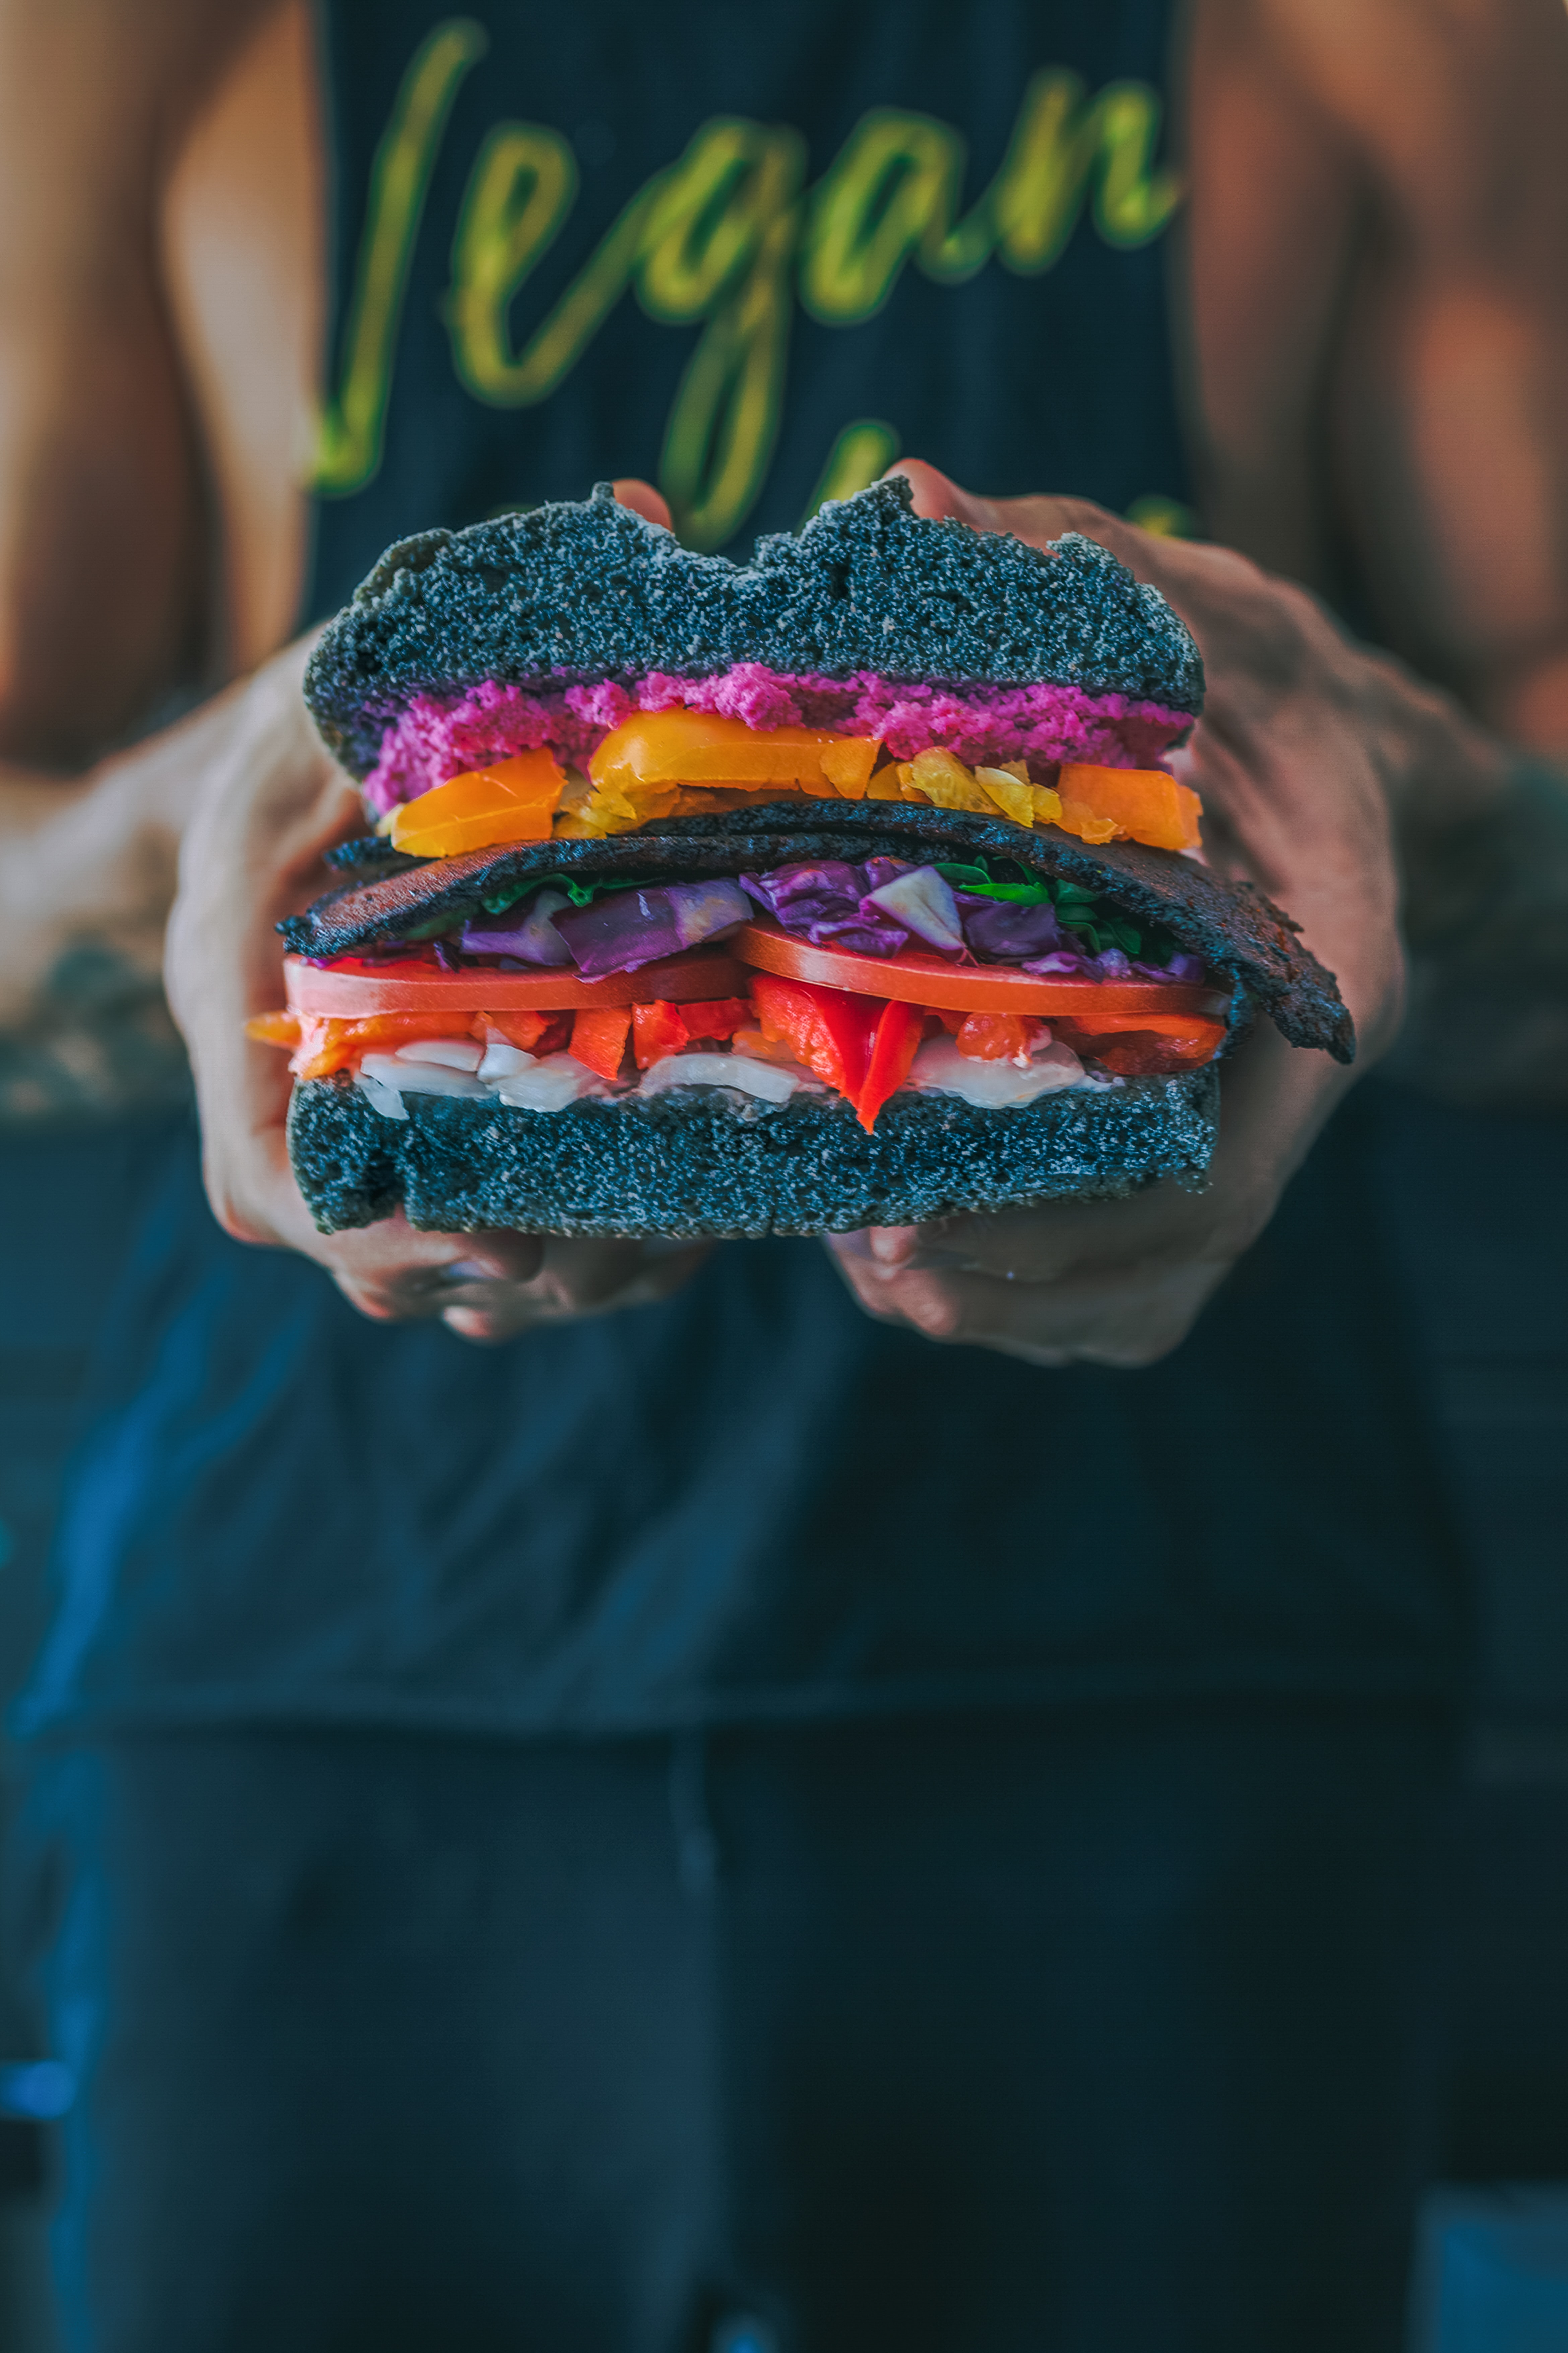 person holding meat sandwich with sliced tomatoes, onions, and grilled meat